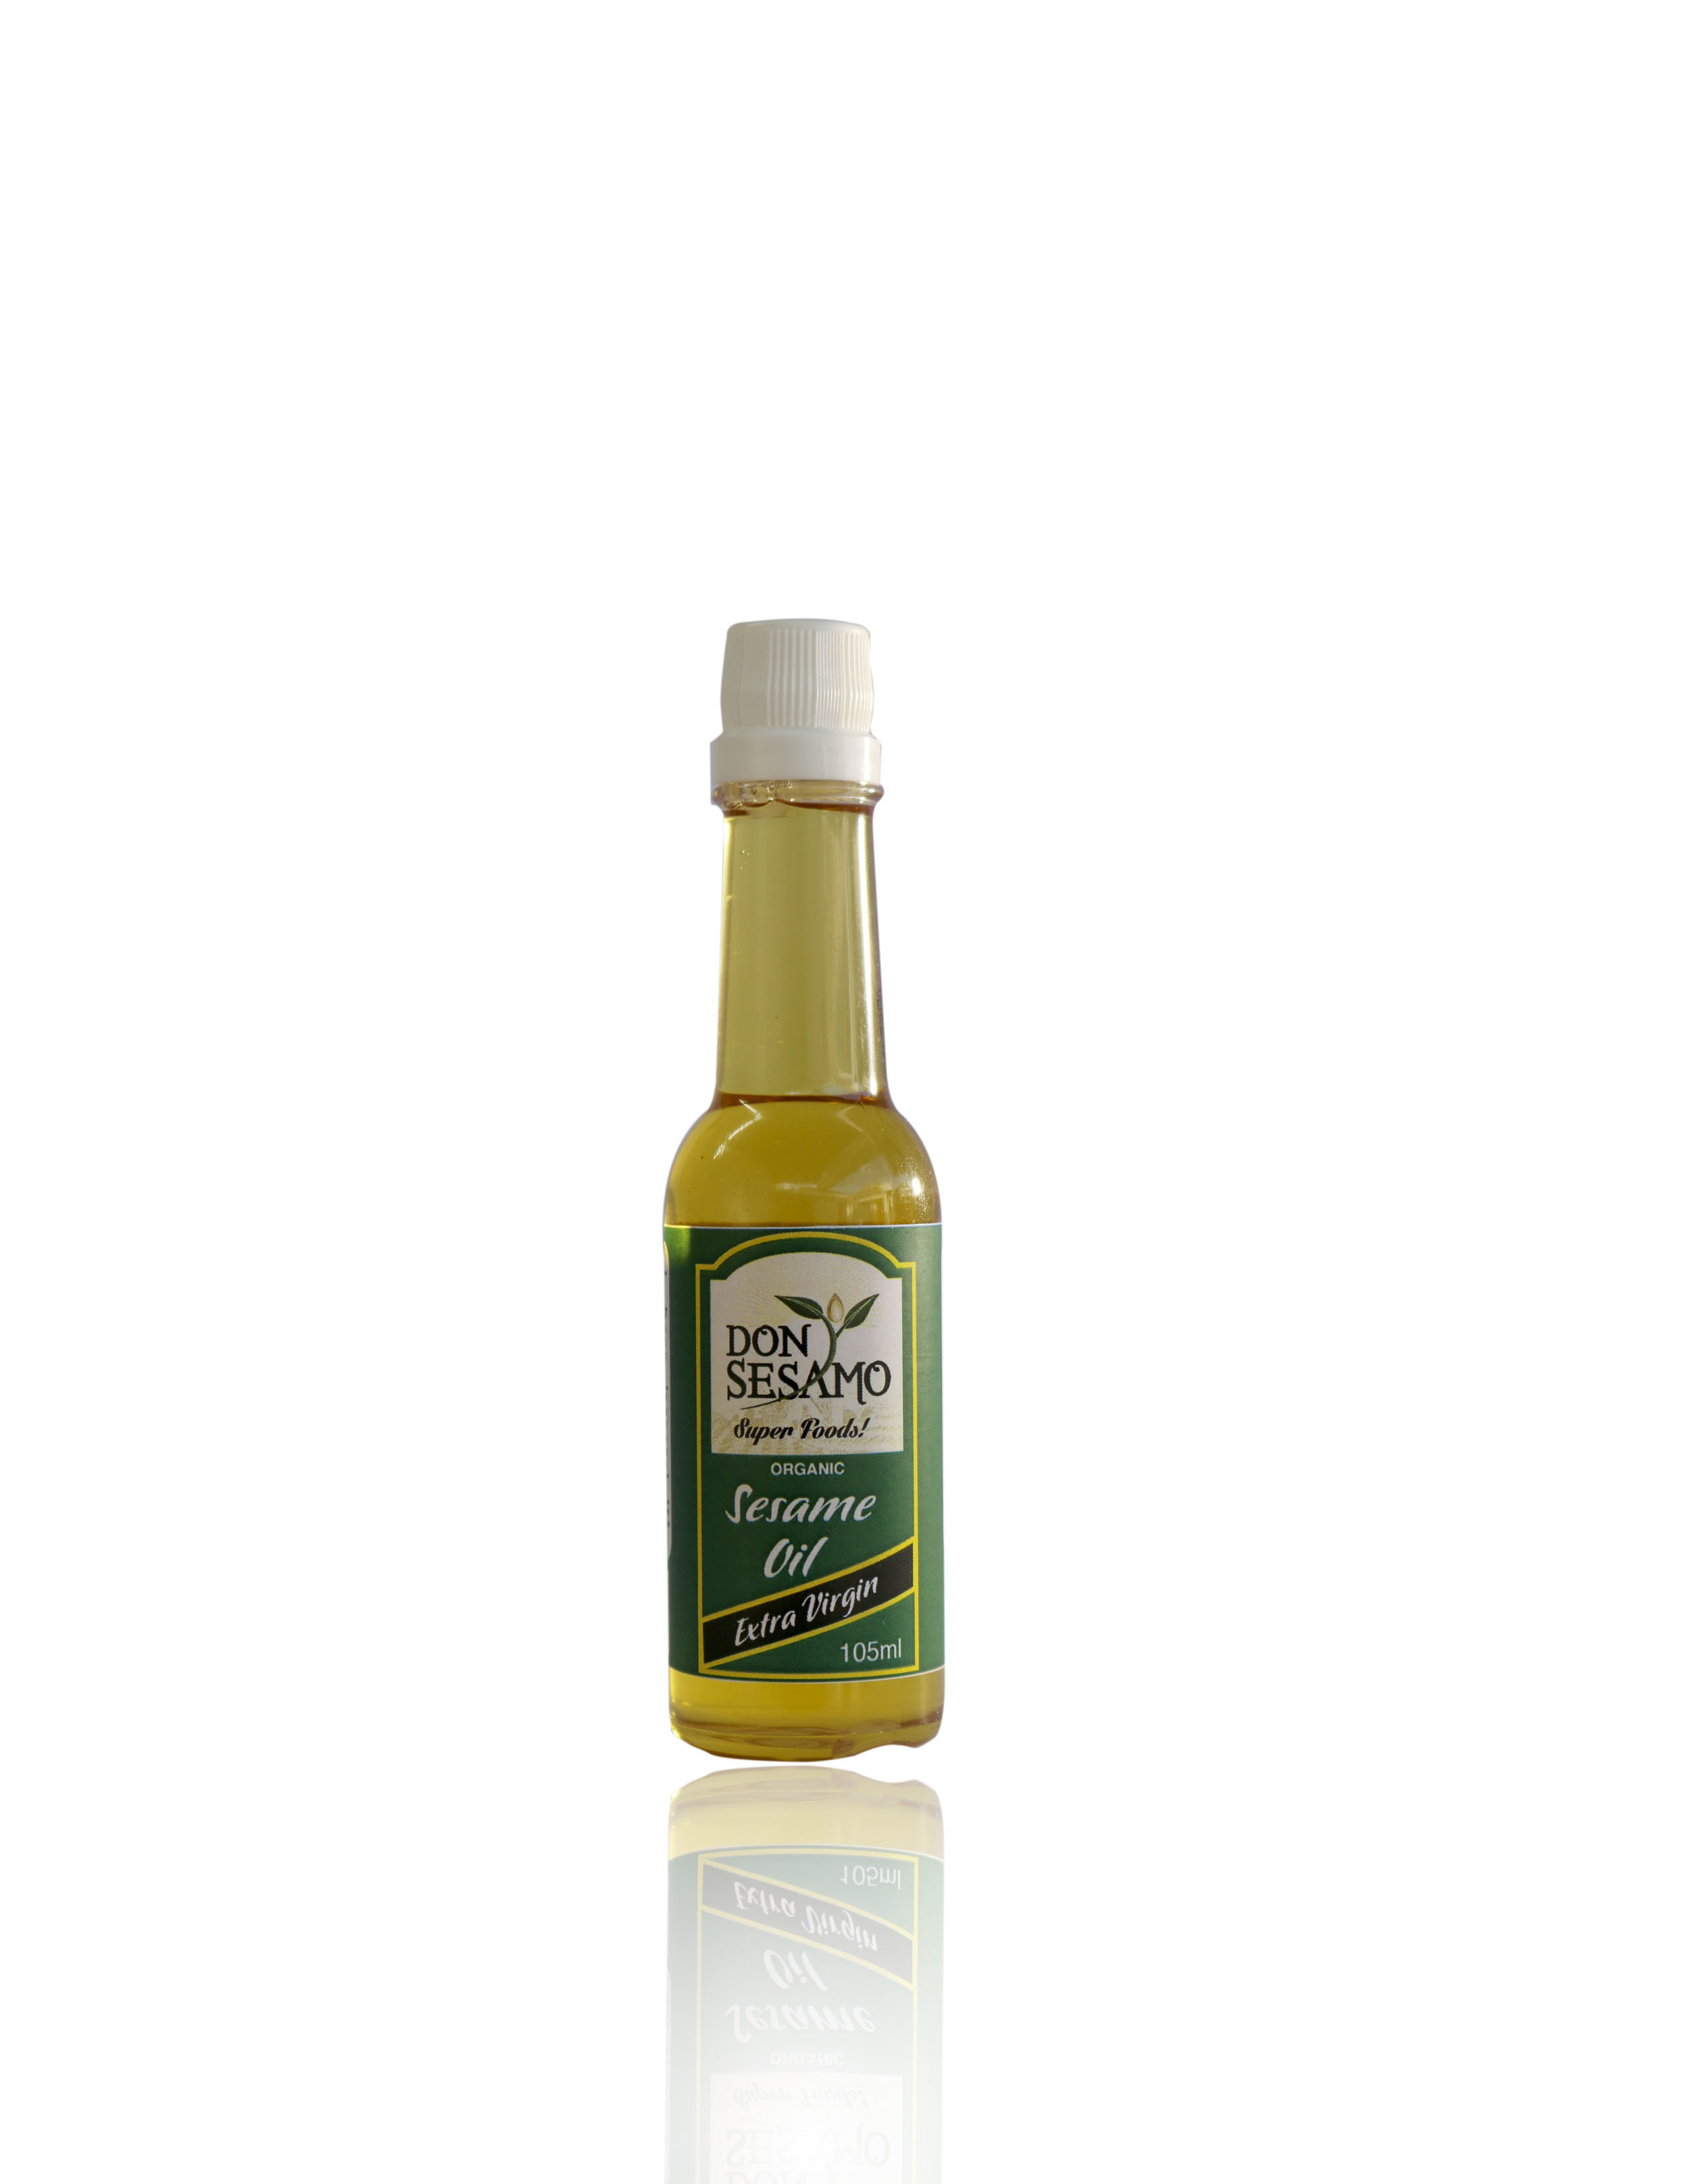 SESAME OIL EXTRA VIRGIN 105 ML (3.55 fl. OZ.)